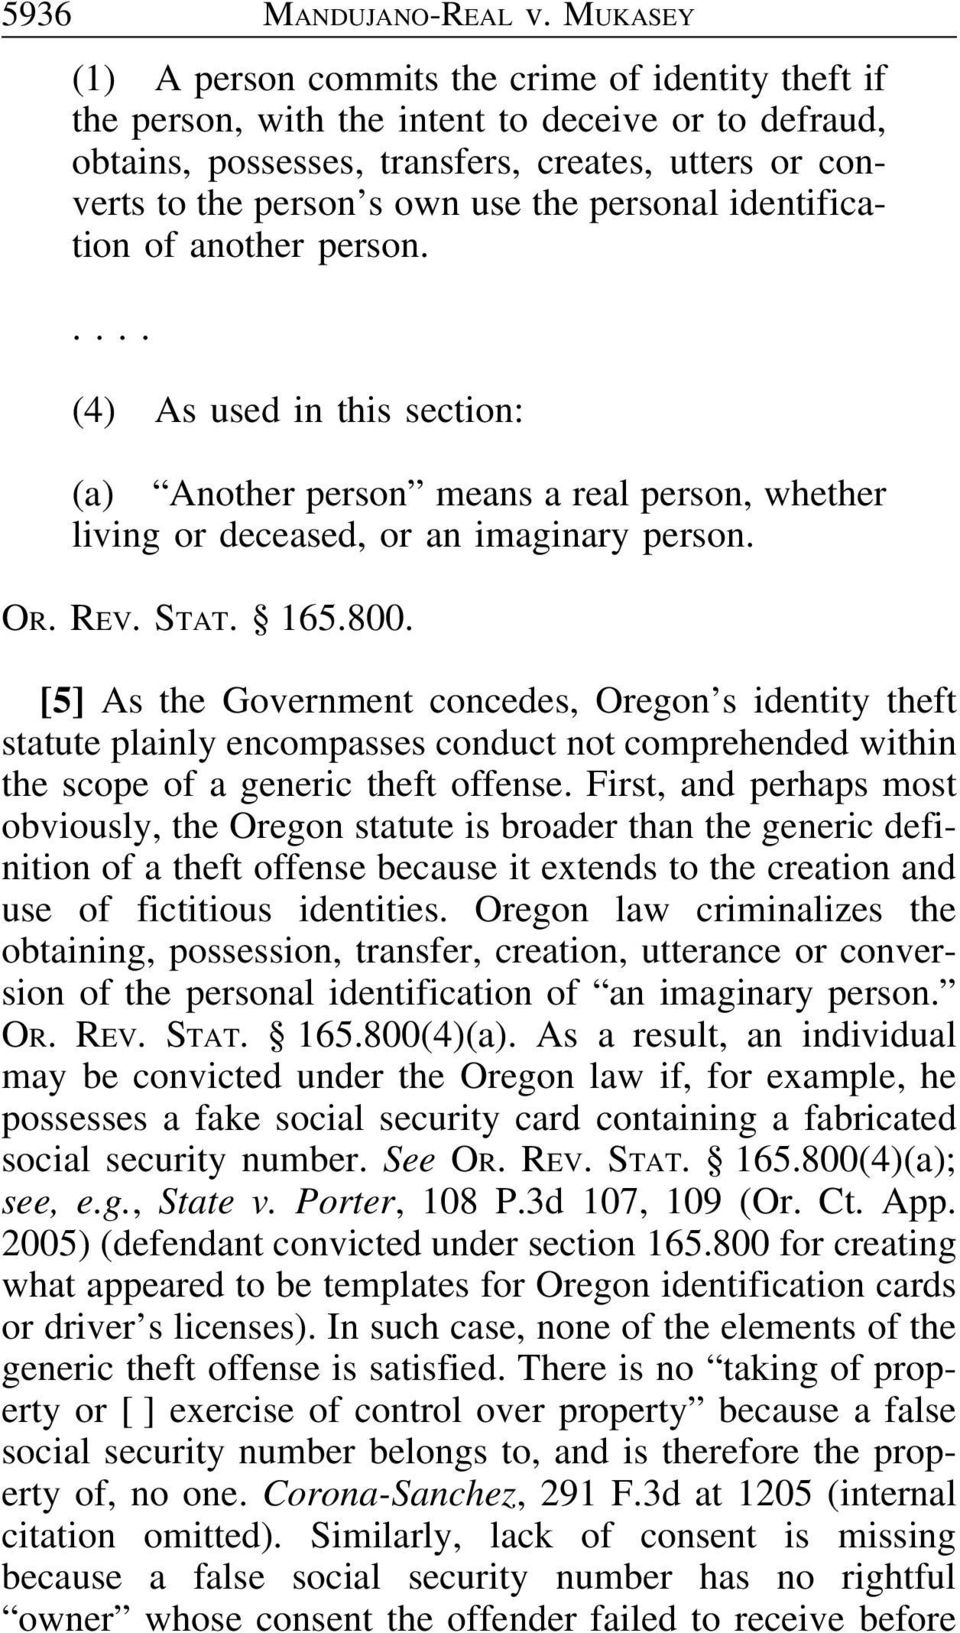 the personal identification of another person..... (4) As used in this section: (a) Another person means a real person, whether living or deceased, or an imaginary person. OR. REV. STAT. 165.800.